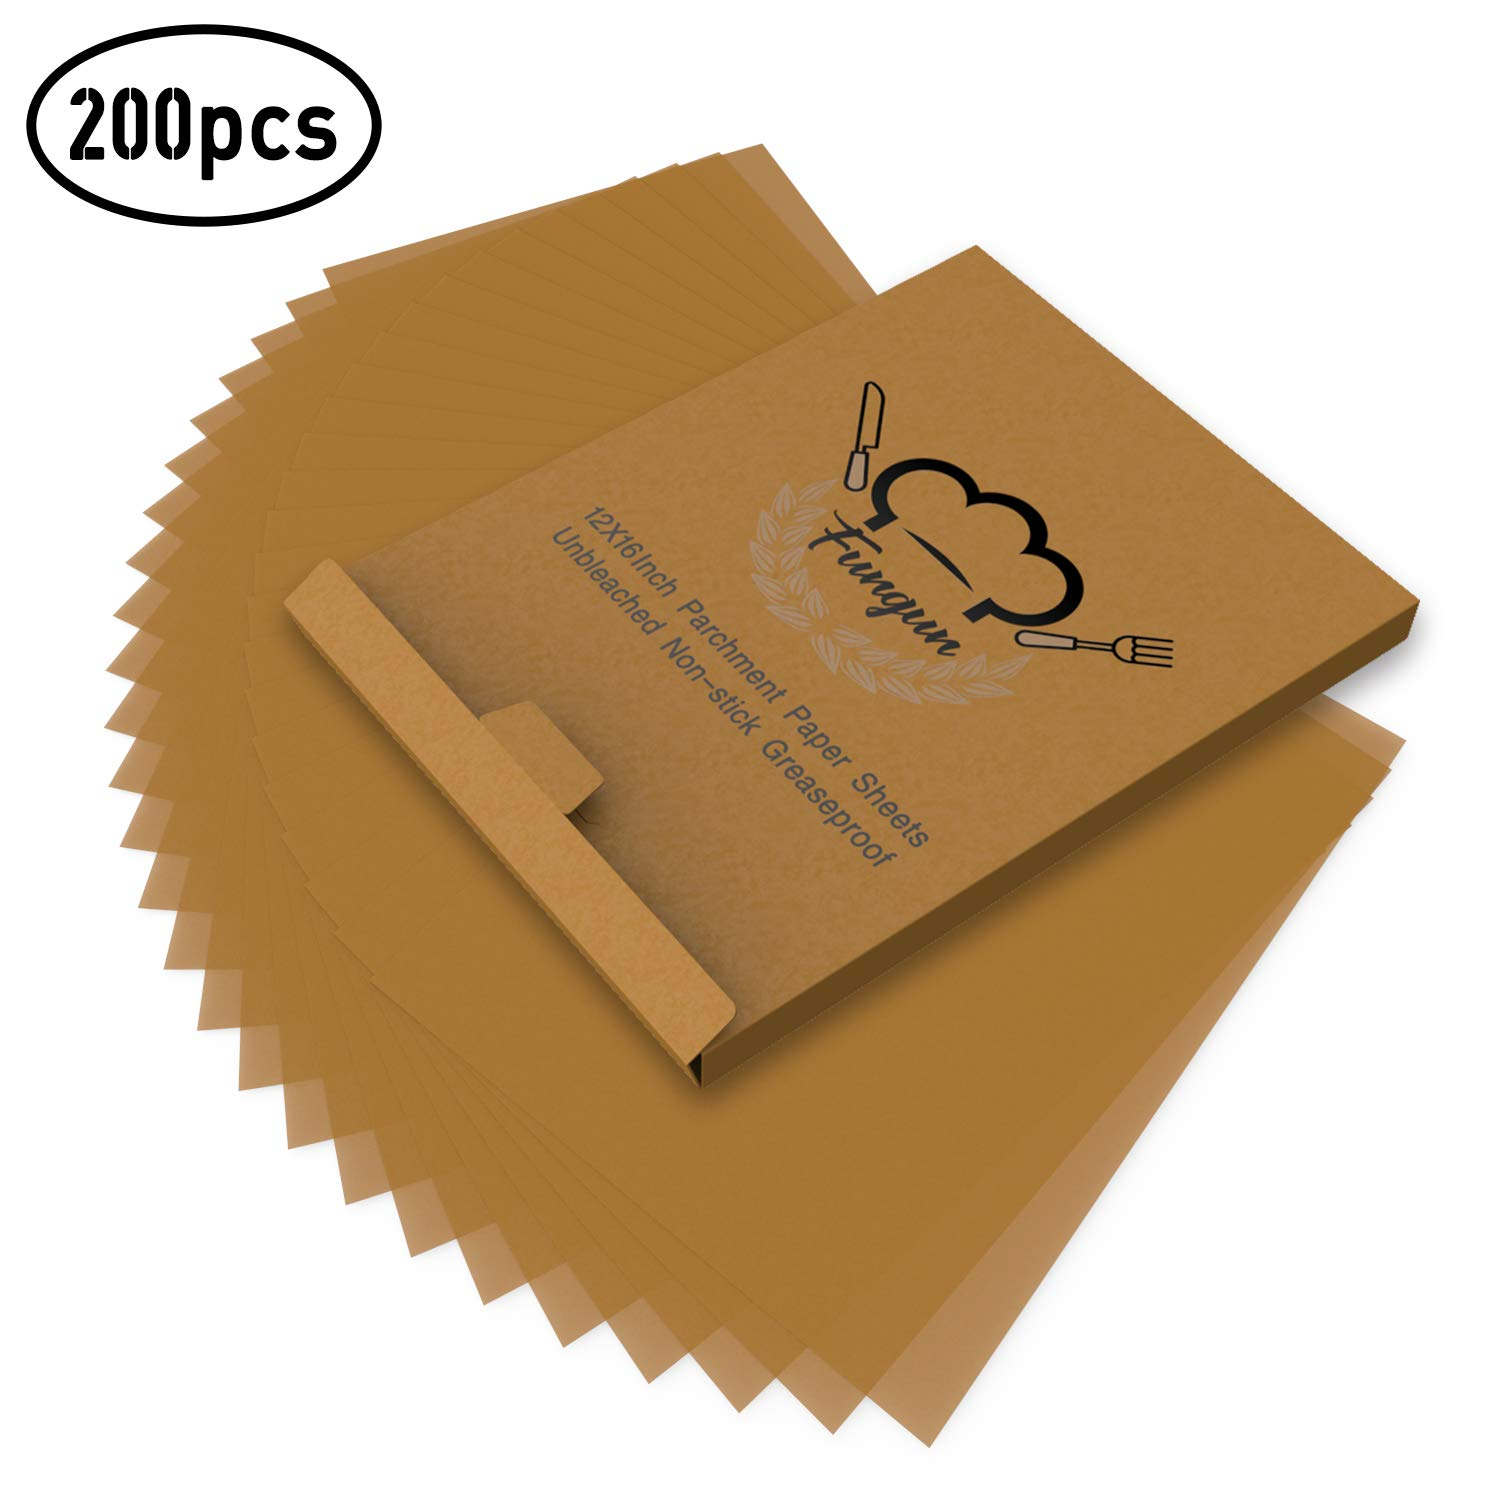 200pcs Parchment Paper Baking Sheets, Fungun 12x16'' Non-Stick Unbleached Precut Parchment Paper for Cook, Grill, Steam, Pans, Air Fryers, Hamburger Patty Paper by fungun